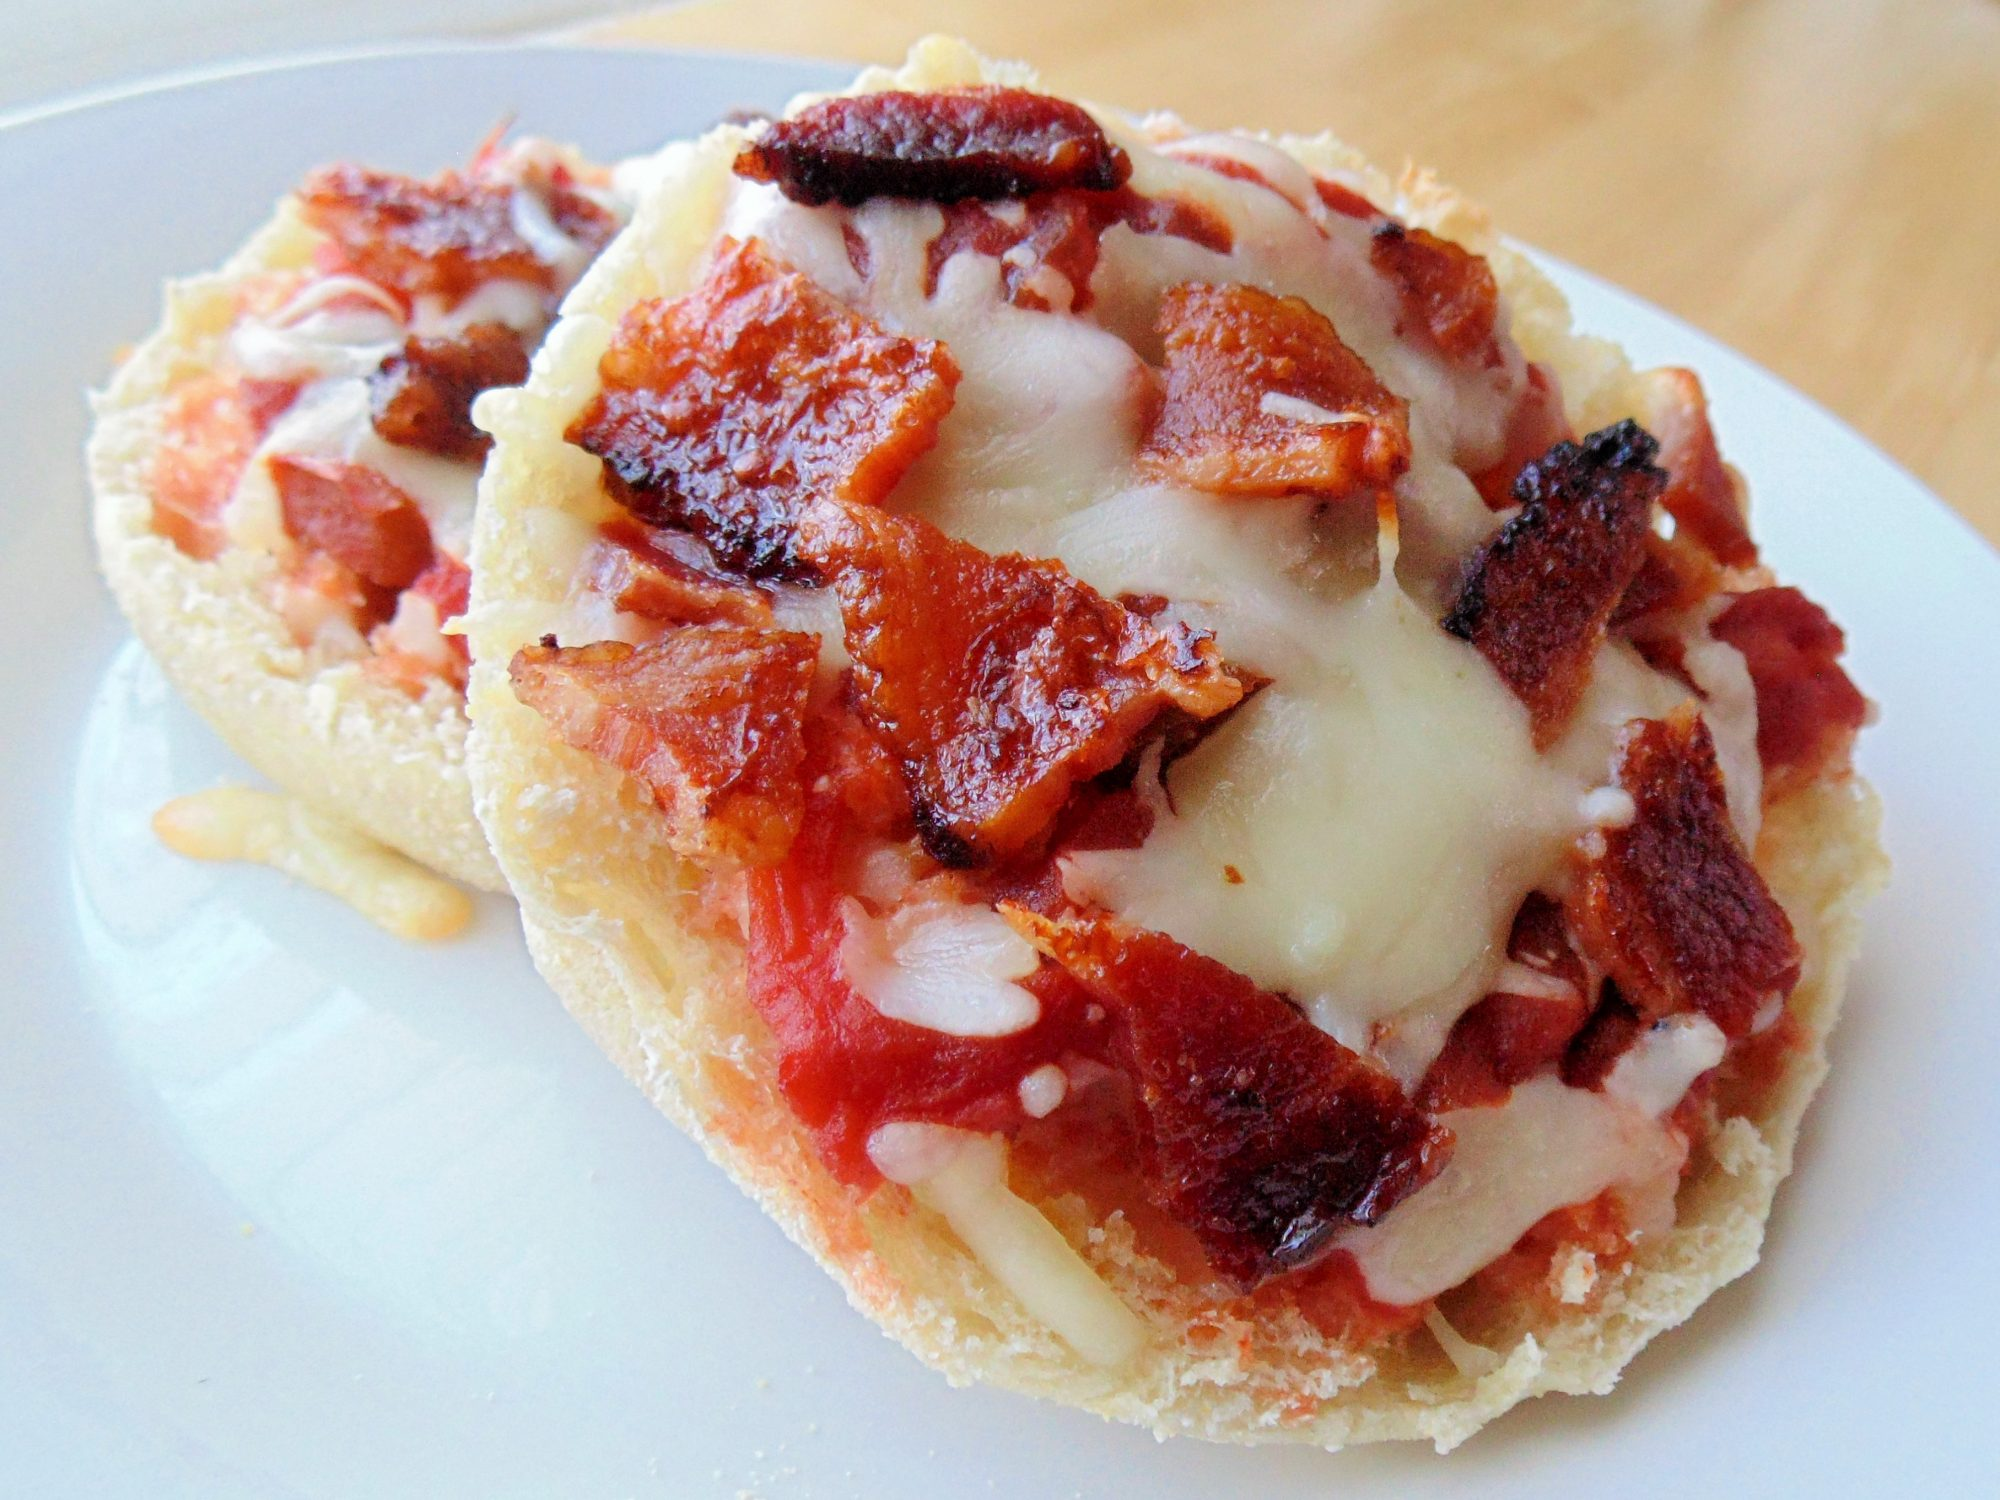 two english muffins with tomato sauce, cheese, and bacon